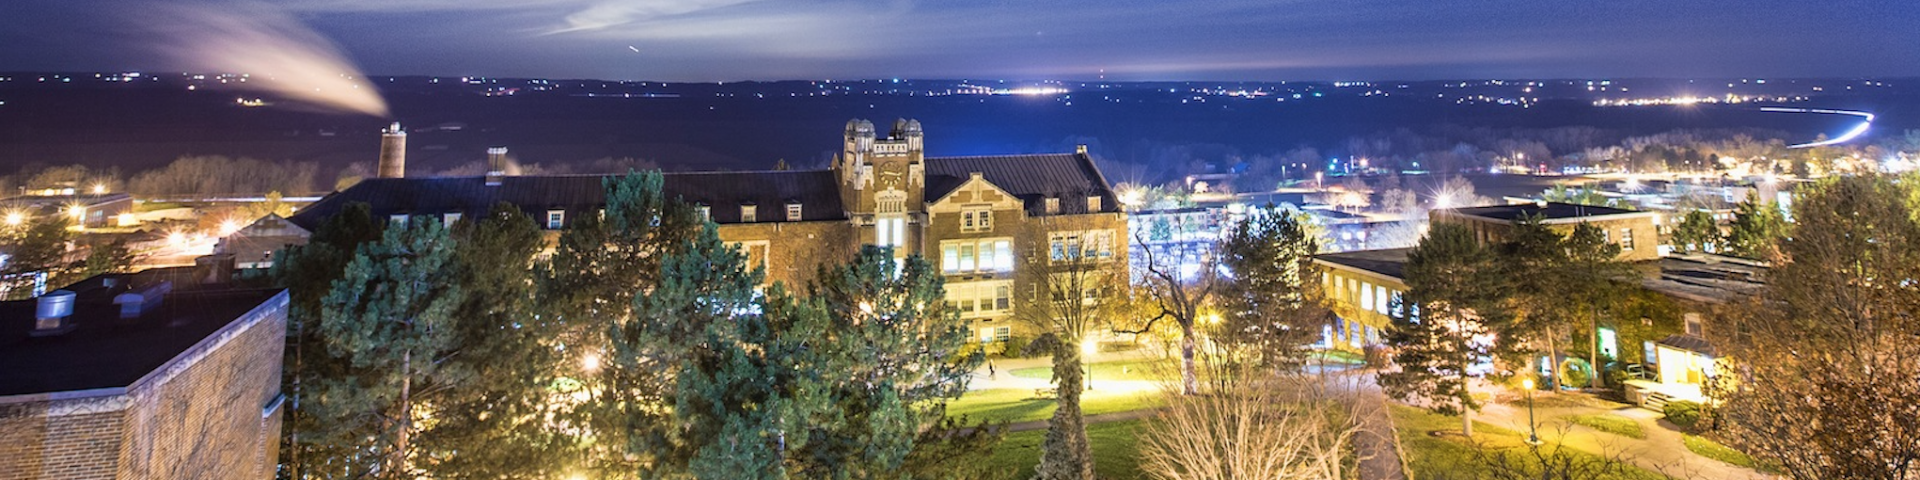 Up-high photo of Geneseo campus at night.